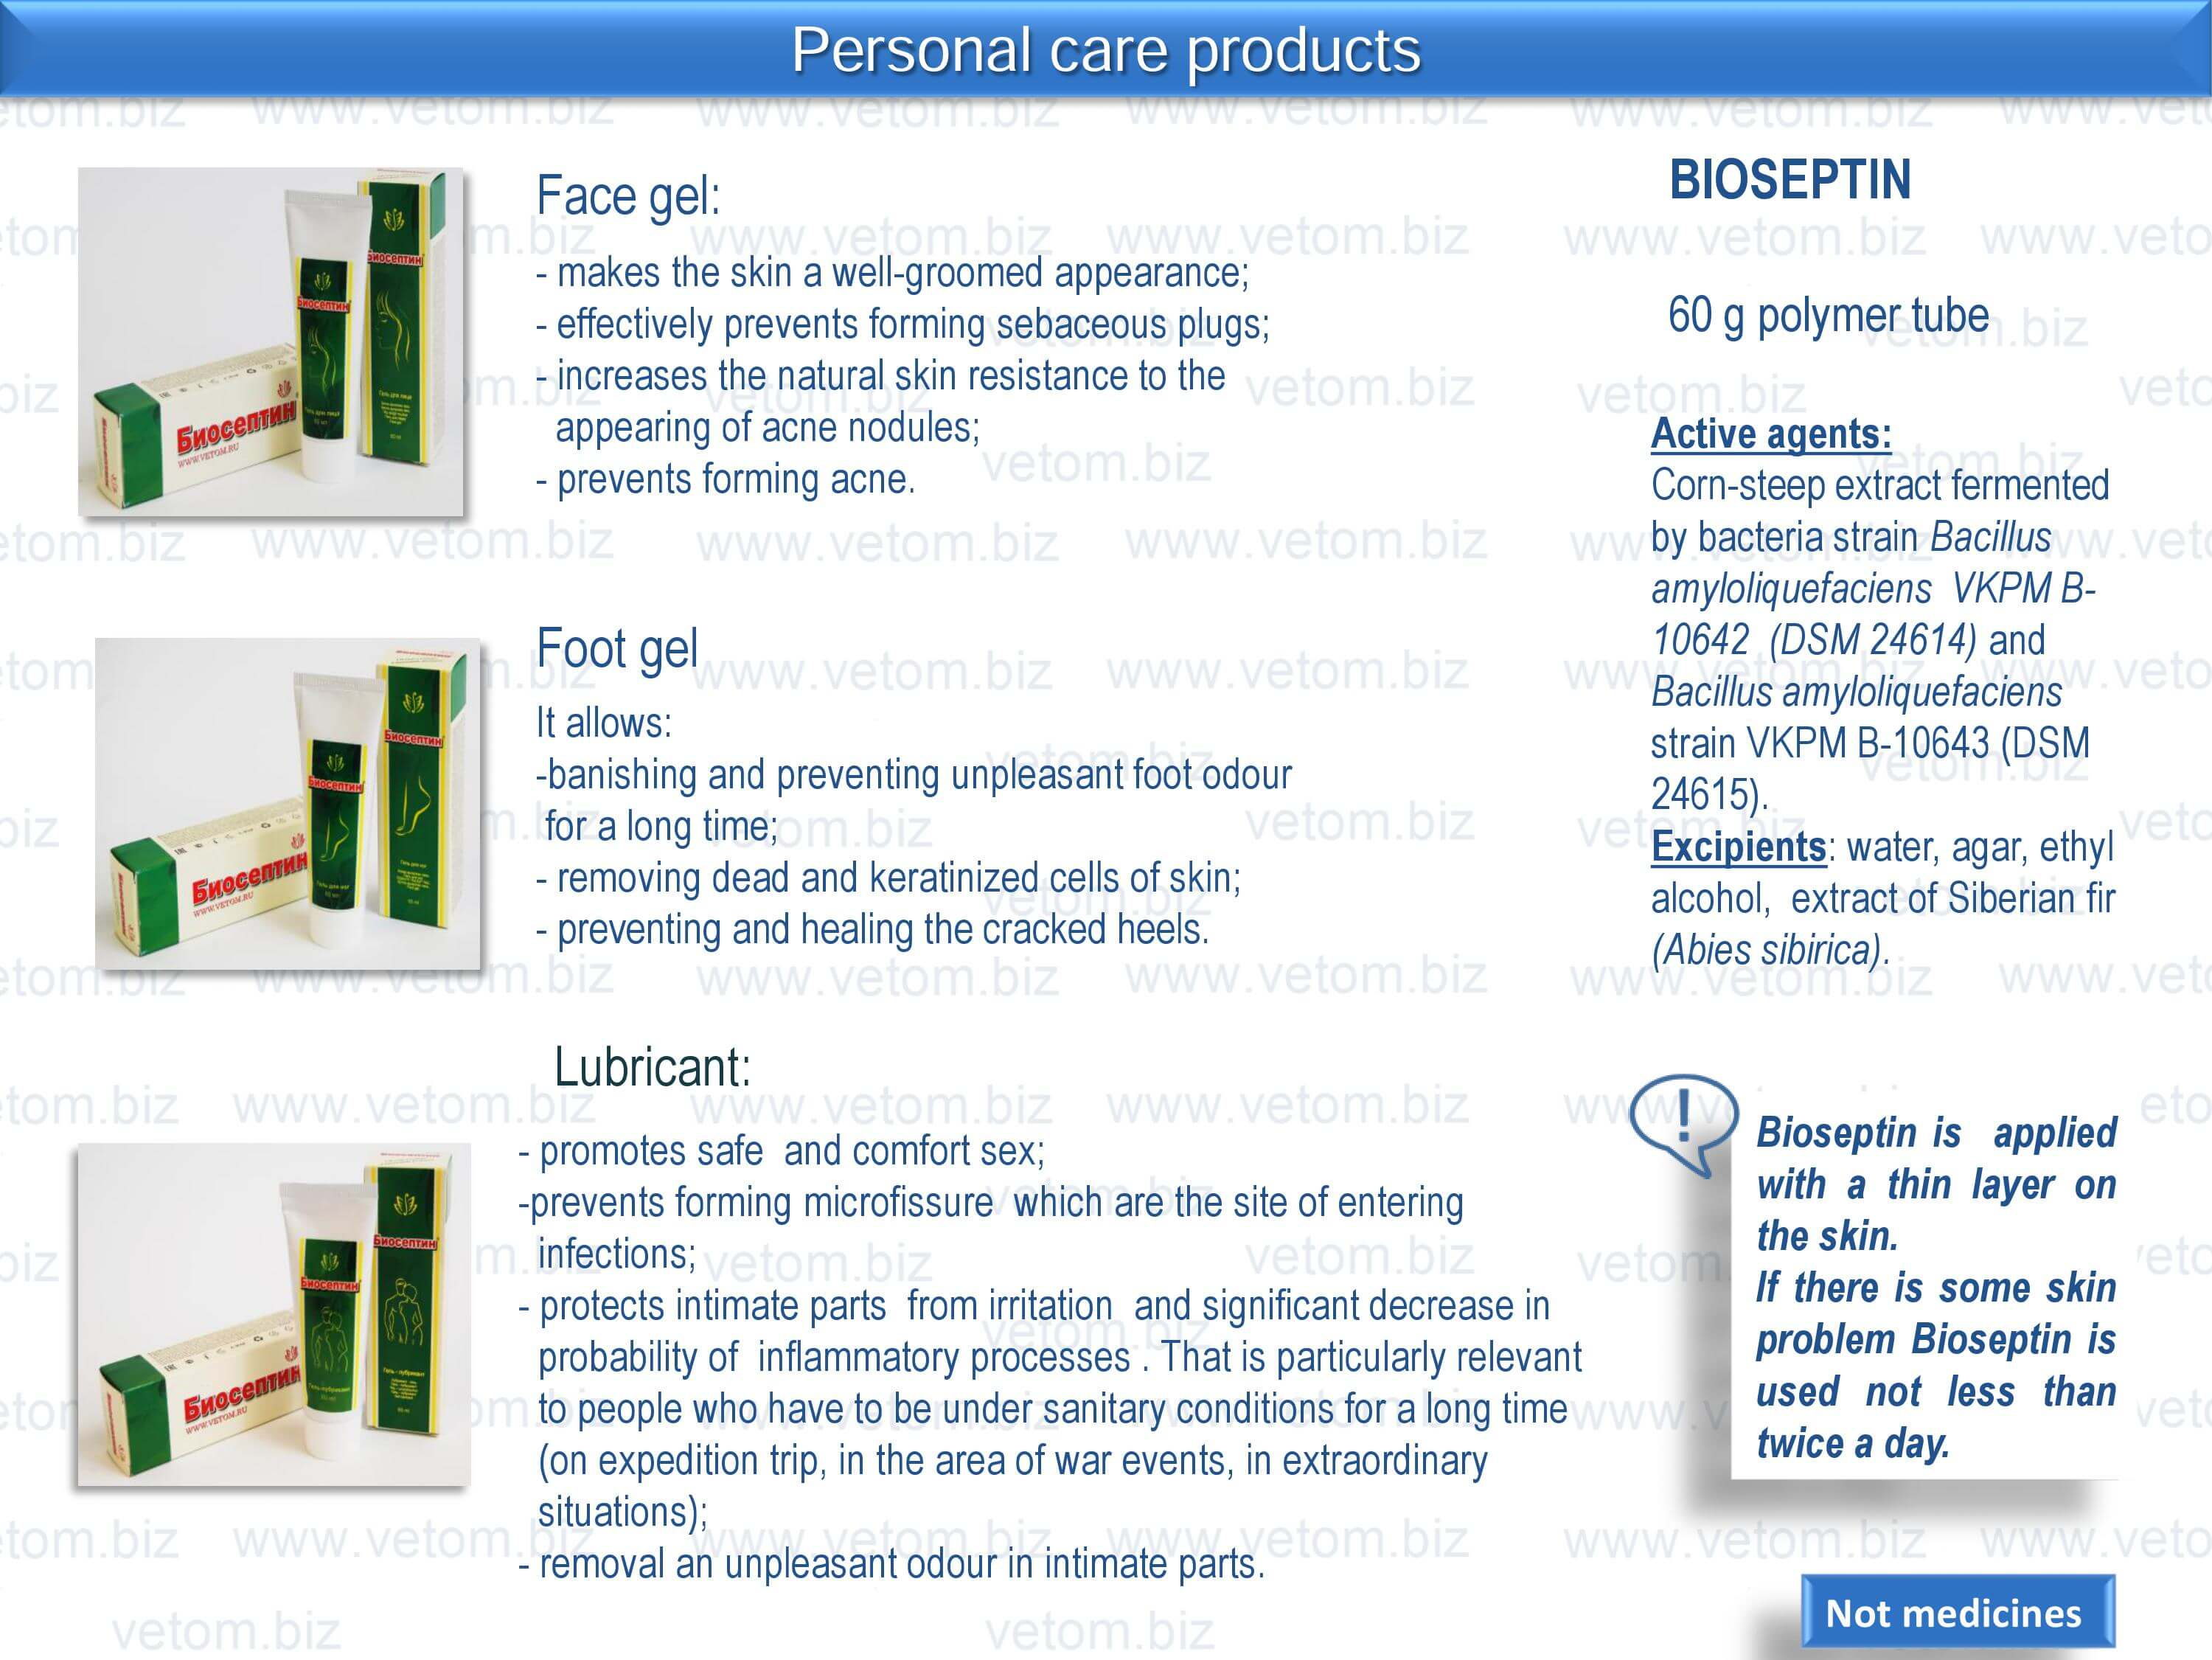 Personal care products of the Bioseptin line - Face gel, Foot gel, Lubricant